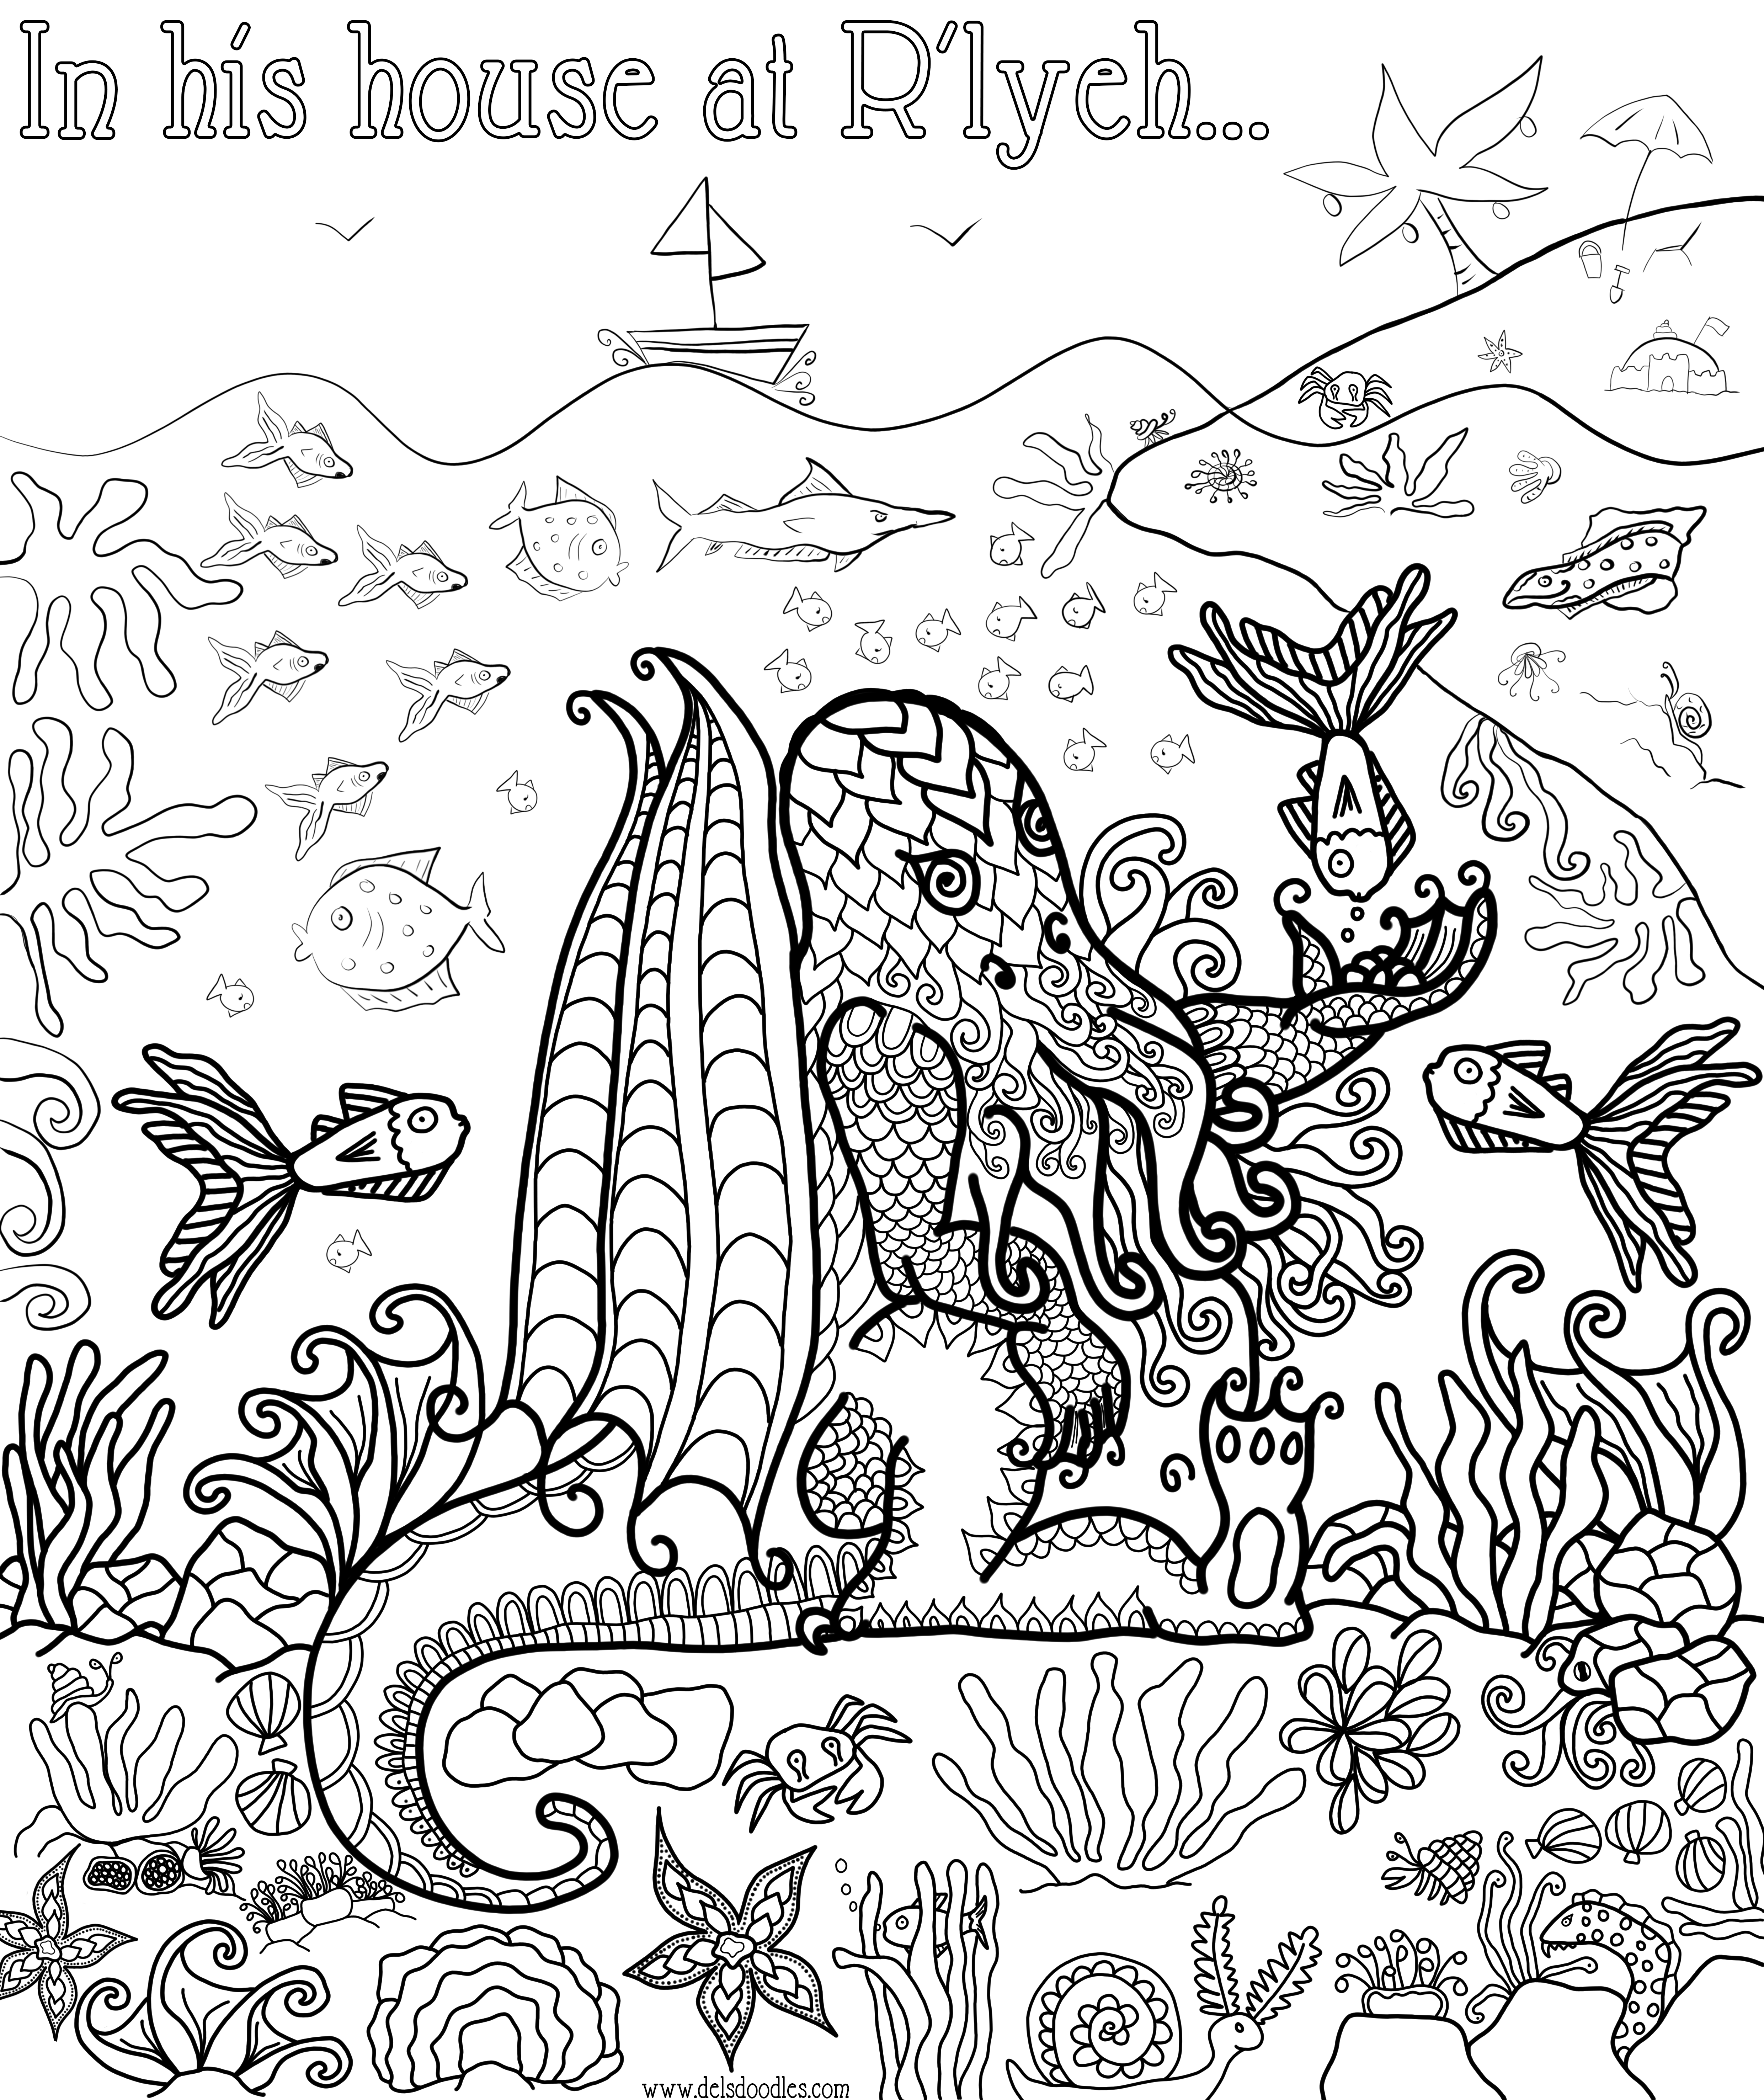 Cthulhu colouring page for Cthulhu coloring pages